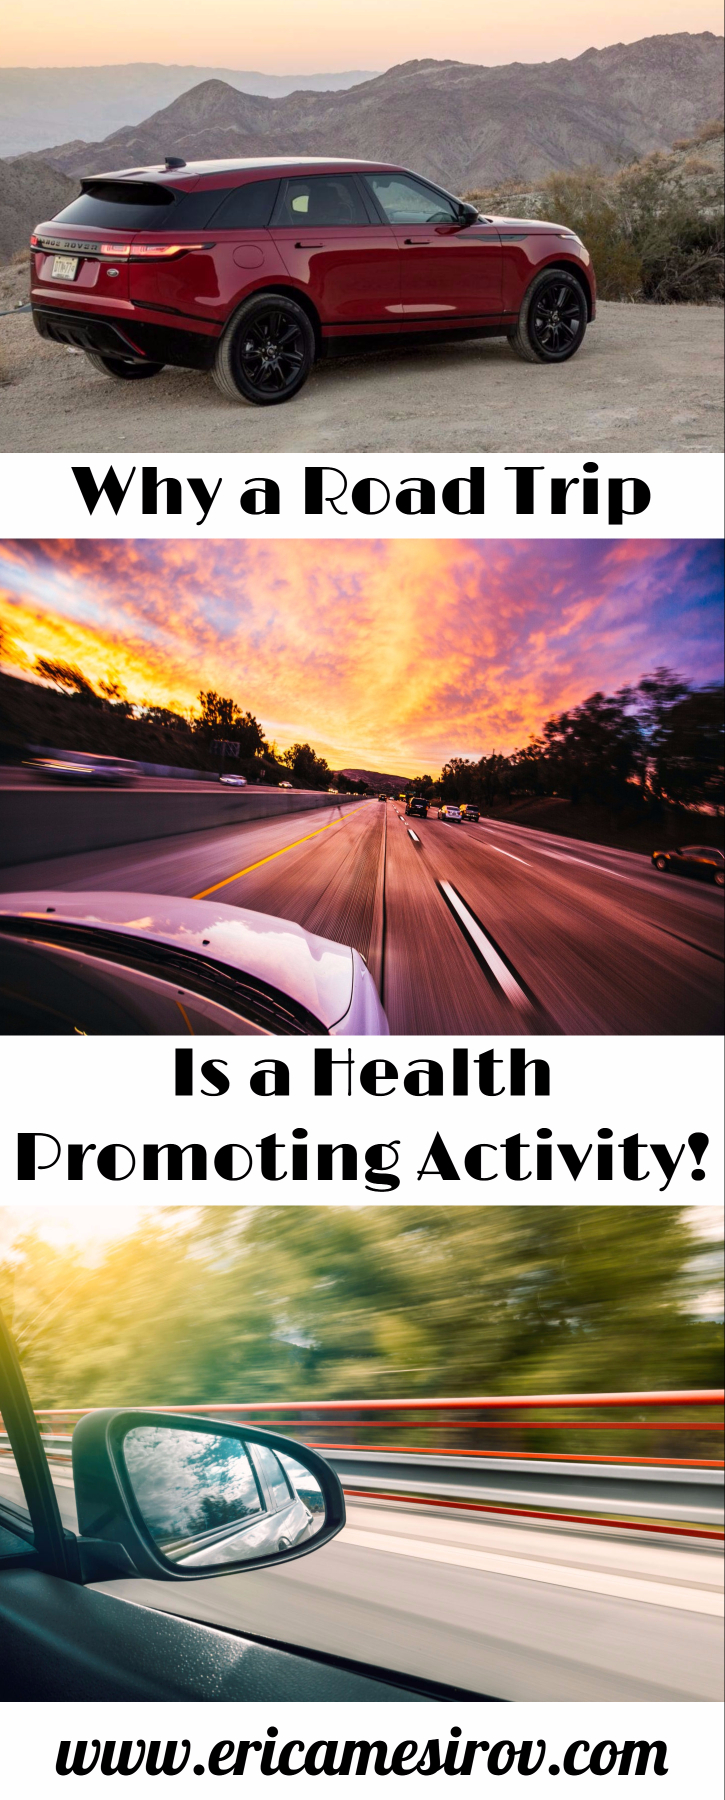 A road trip is a healthy promoting activity. With special car safety tips from cars.com (vacation/ leisure time/ downtime/ rest/ relaxation/ car trip/ stress relief/ drive/ car seat/ car safety)